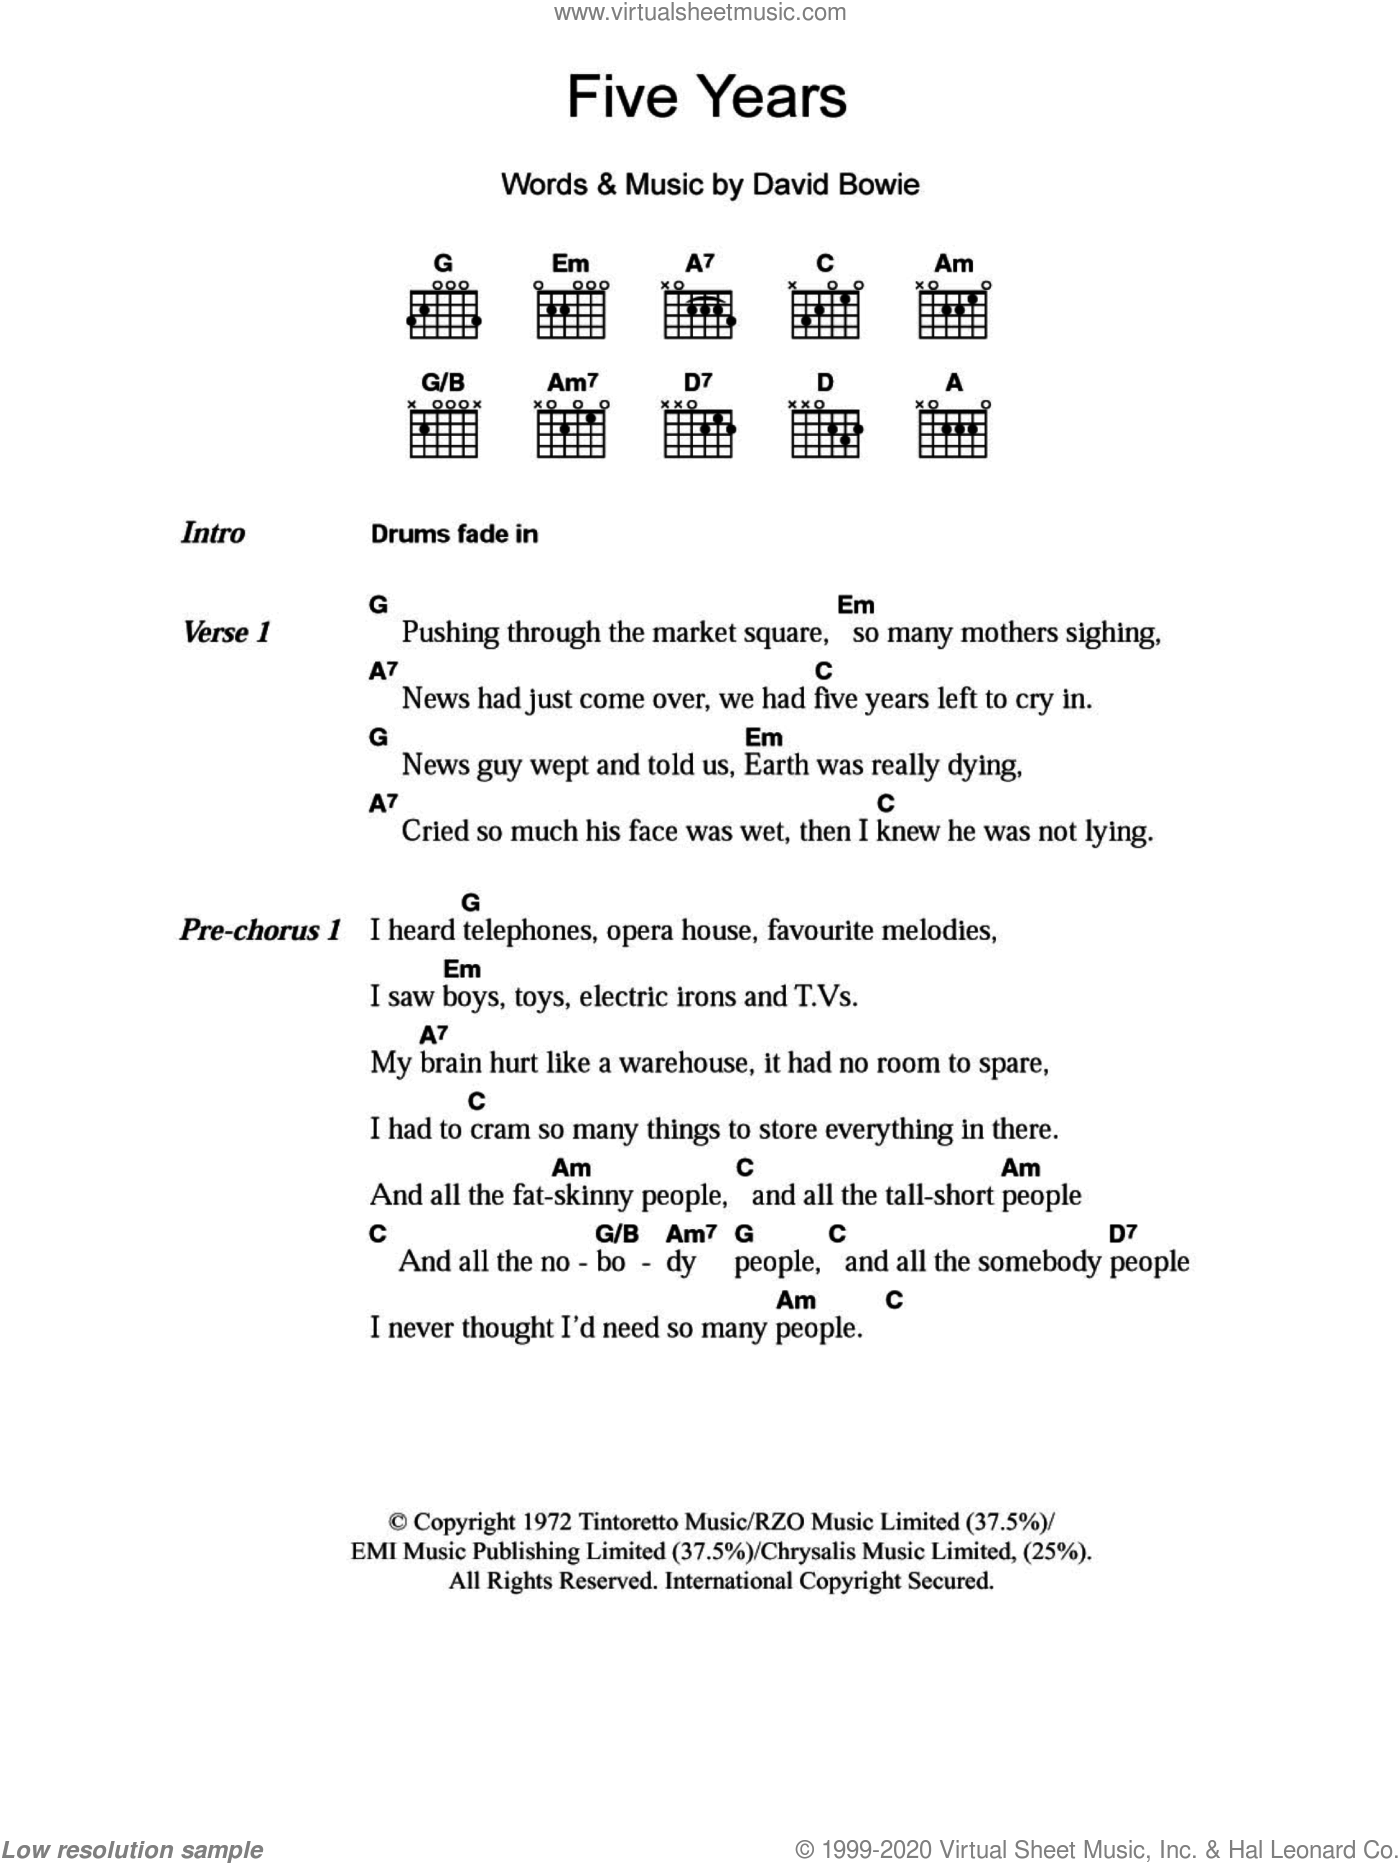 Bowie - Five Years sheet music for guitar (chords) [PDF]